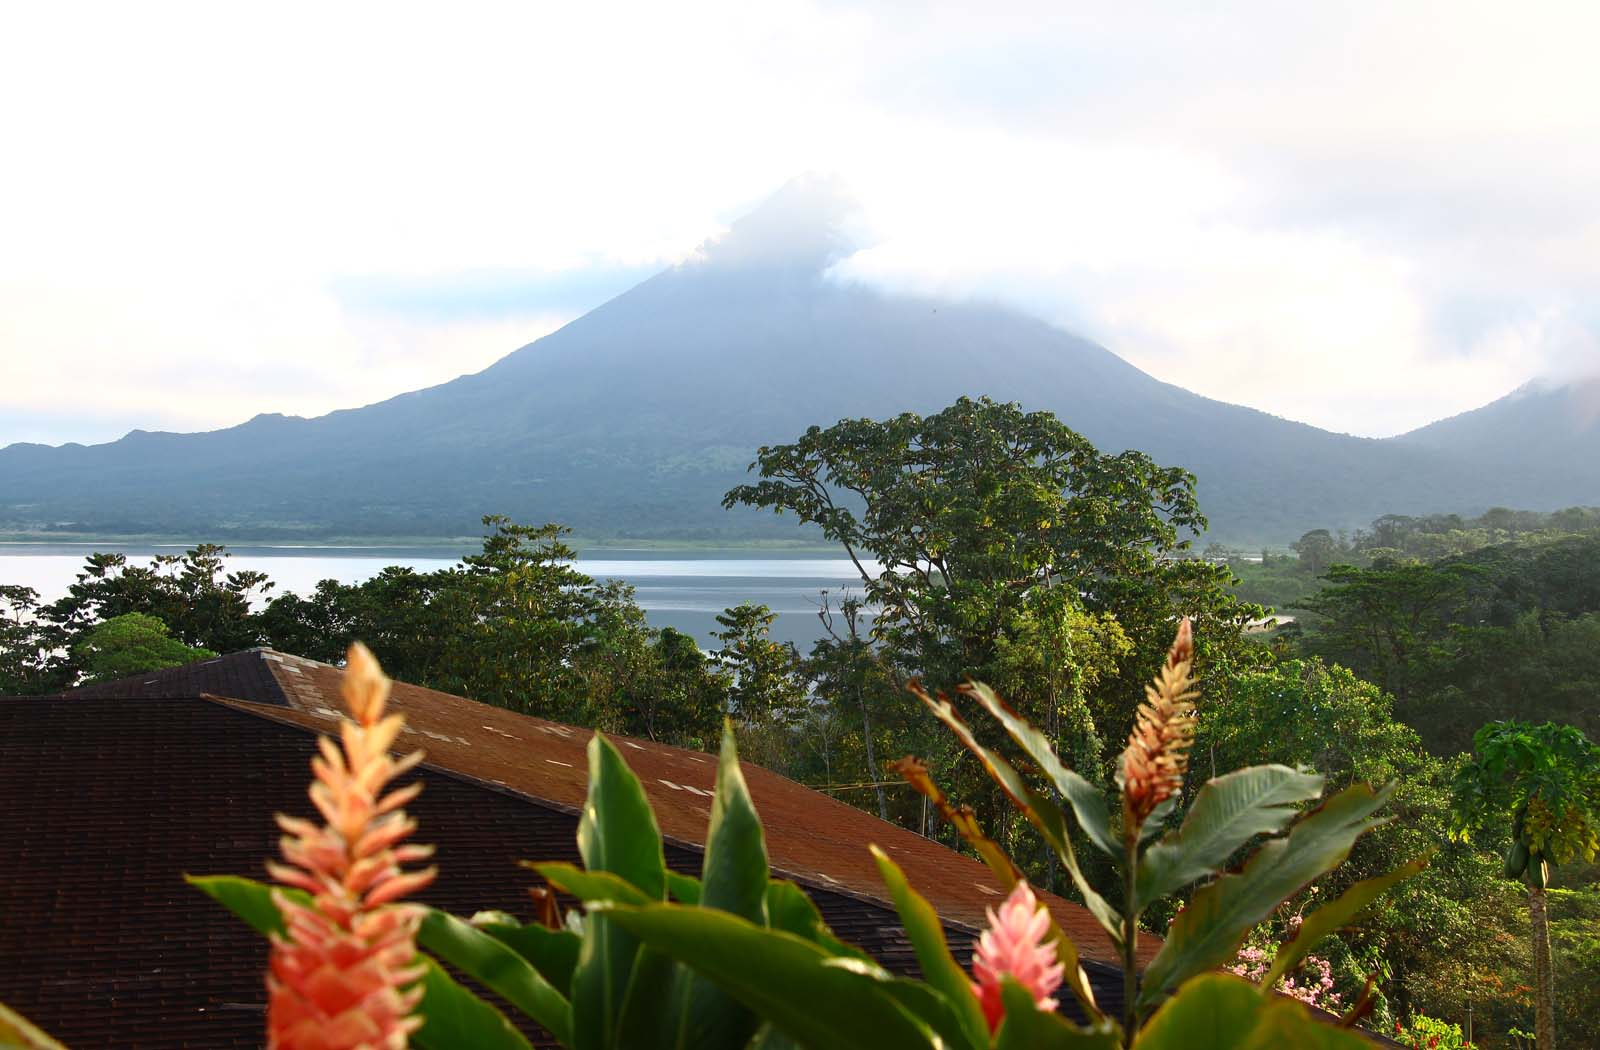 Le volcan d'Arenal